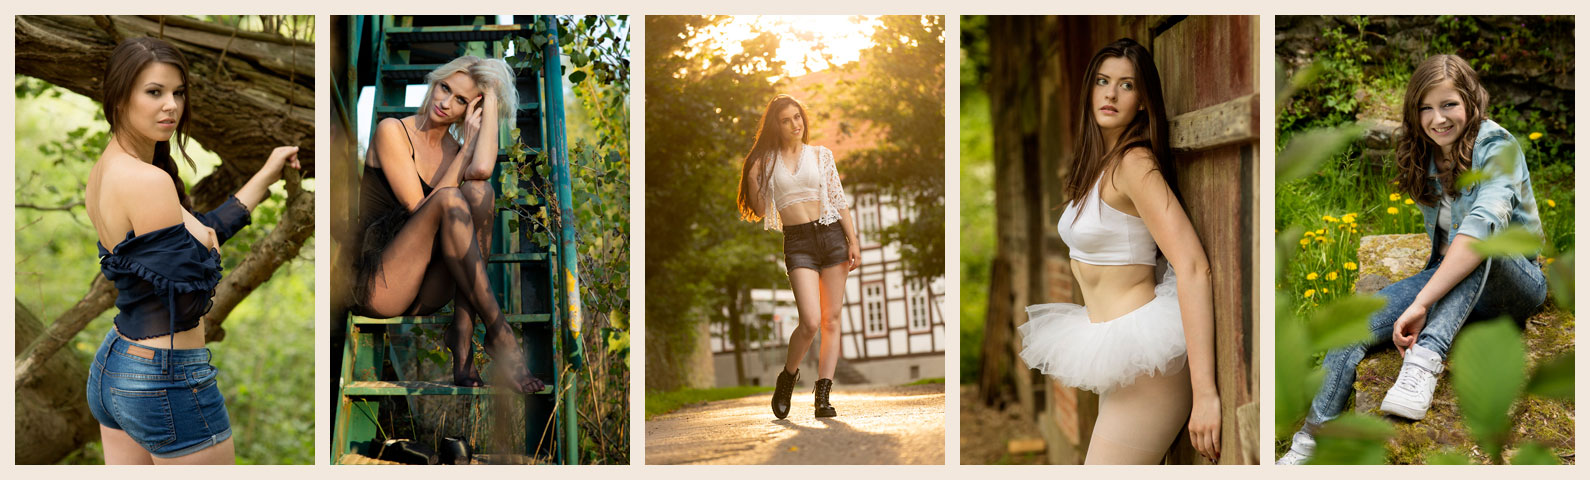 Outdoor Fotoshooting - Fotografieren im Freien - Lost Places - Available Light